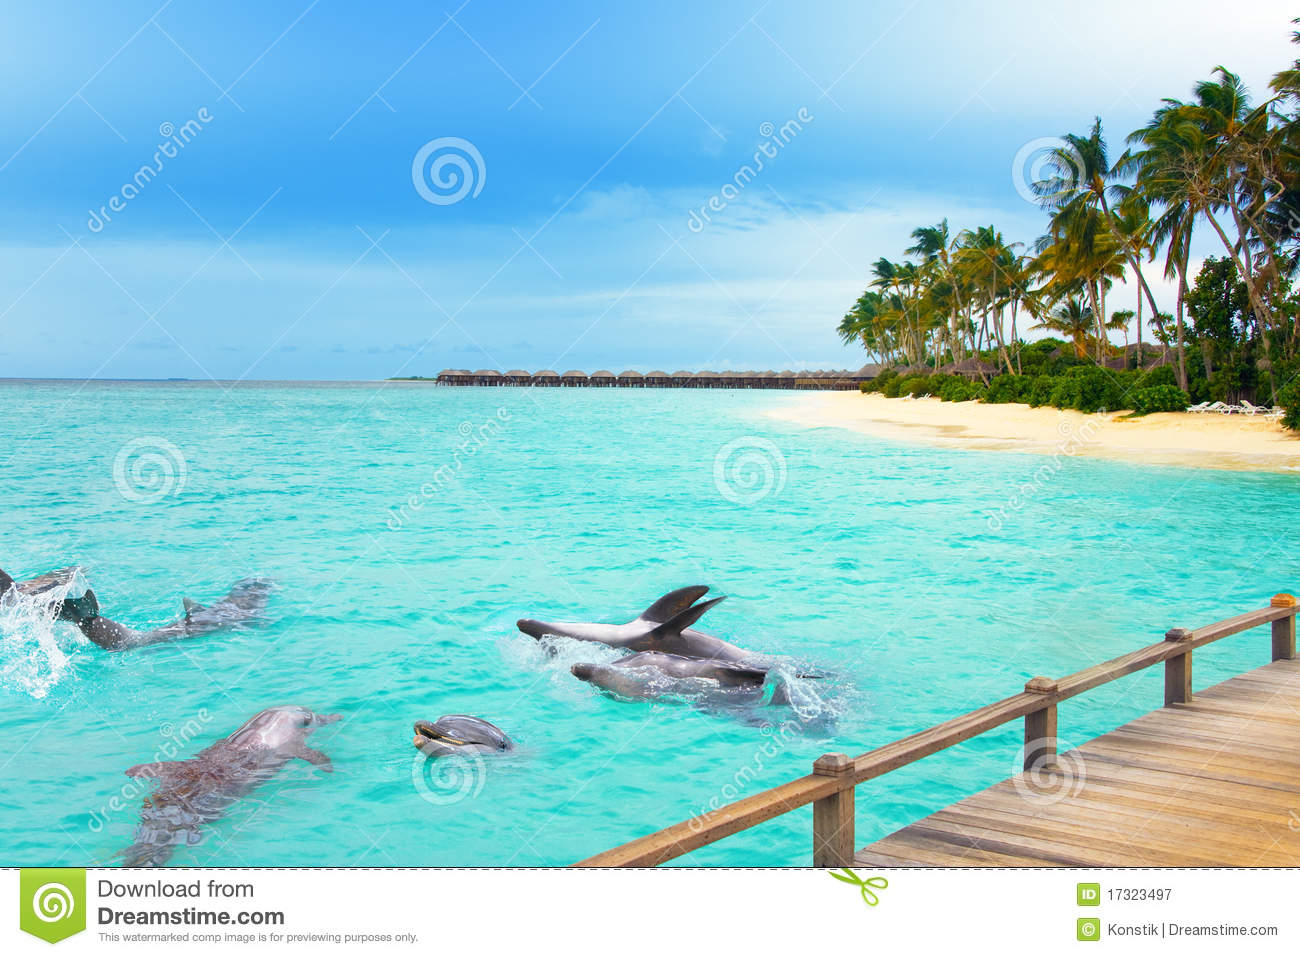 maldives dolphins at ocean and tropical island royalty free